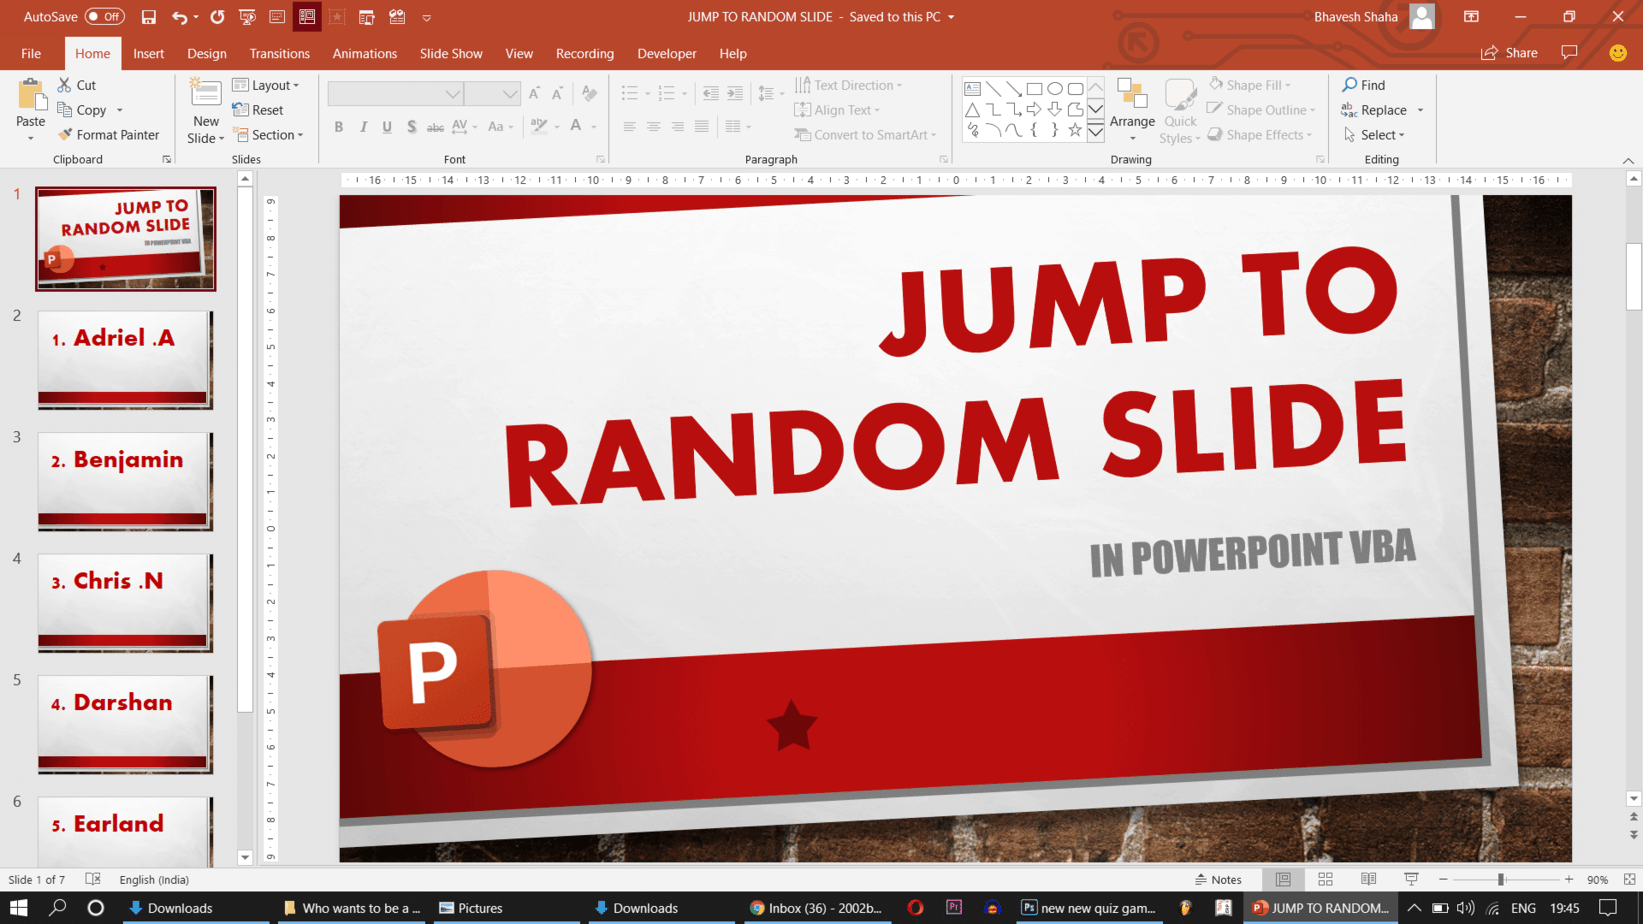 Screenshot 293 - How to jump to a RANDOM Slide in PowerPoint